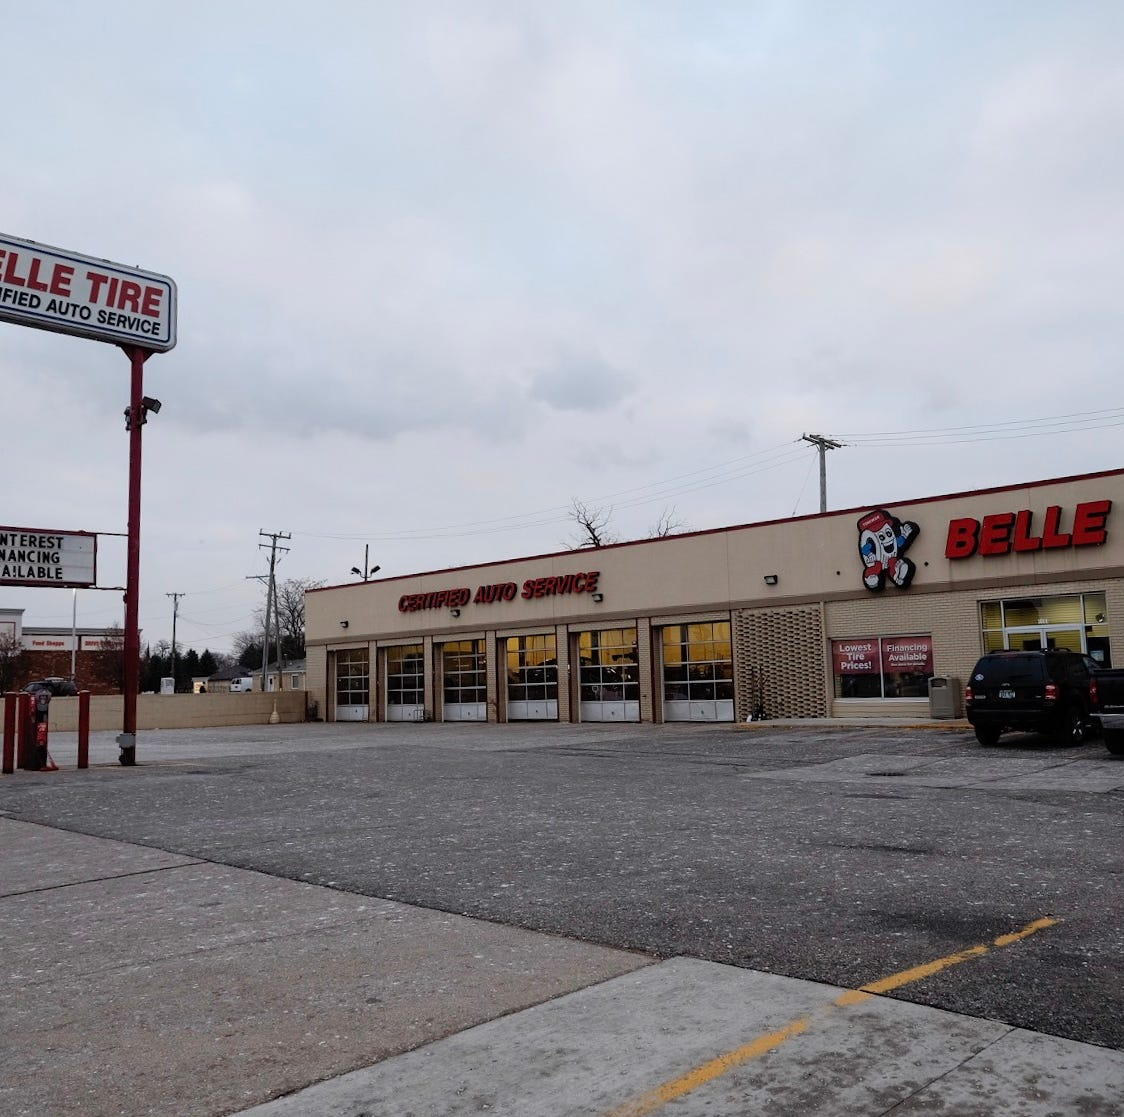 Update: Feds sue Port Huron Belle Tire, allege racial harassment